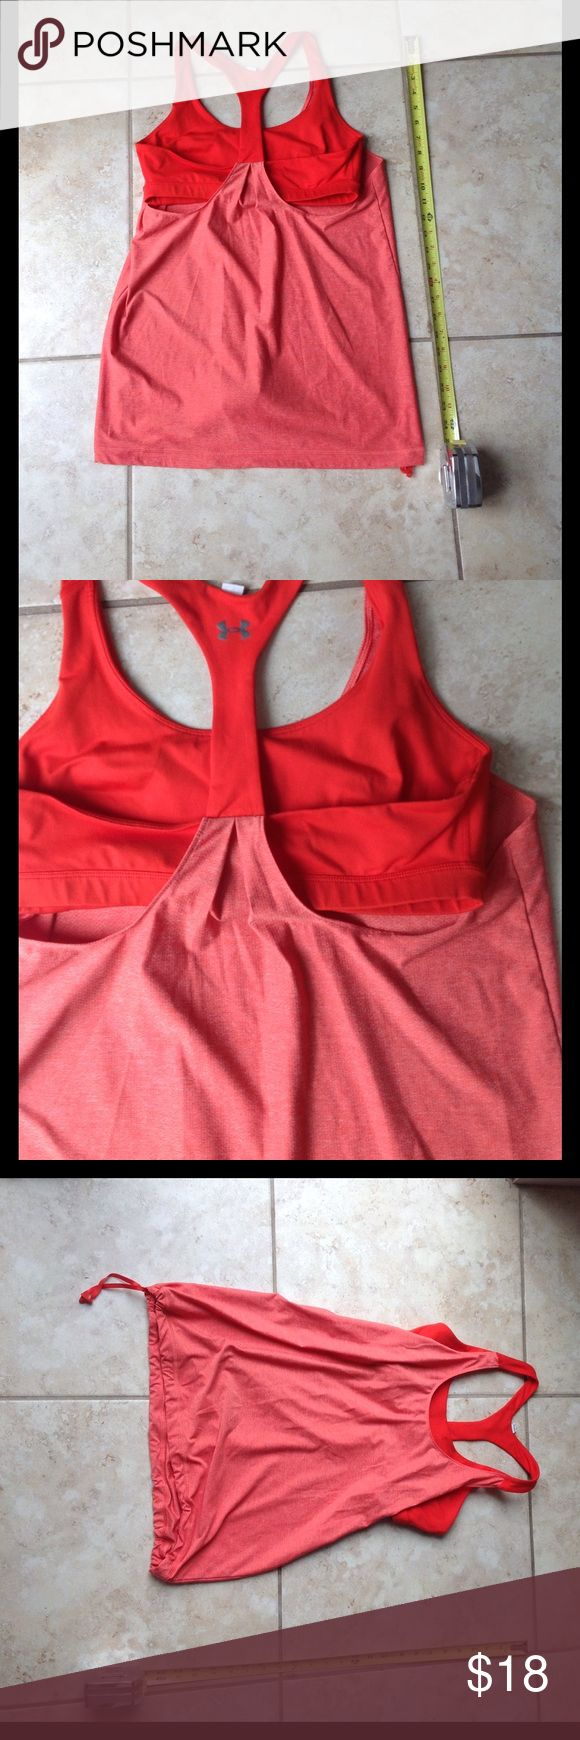 Under Amour top with sports bra Under Amour top with sports bra used tag with size cut off I think it was medium but the bra is tight I says it more of a small Under Armour Tops Tank Tops